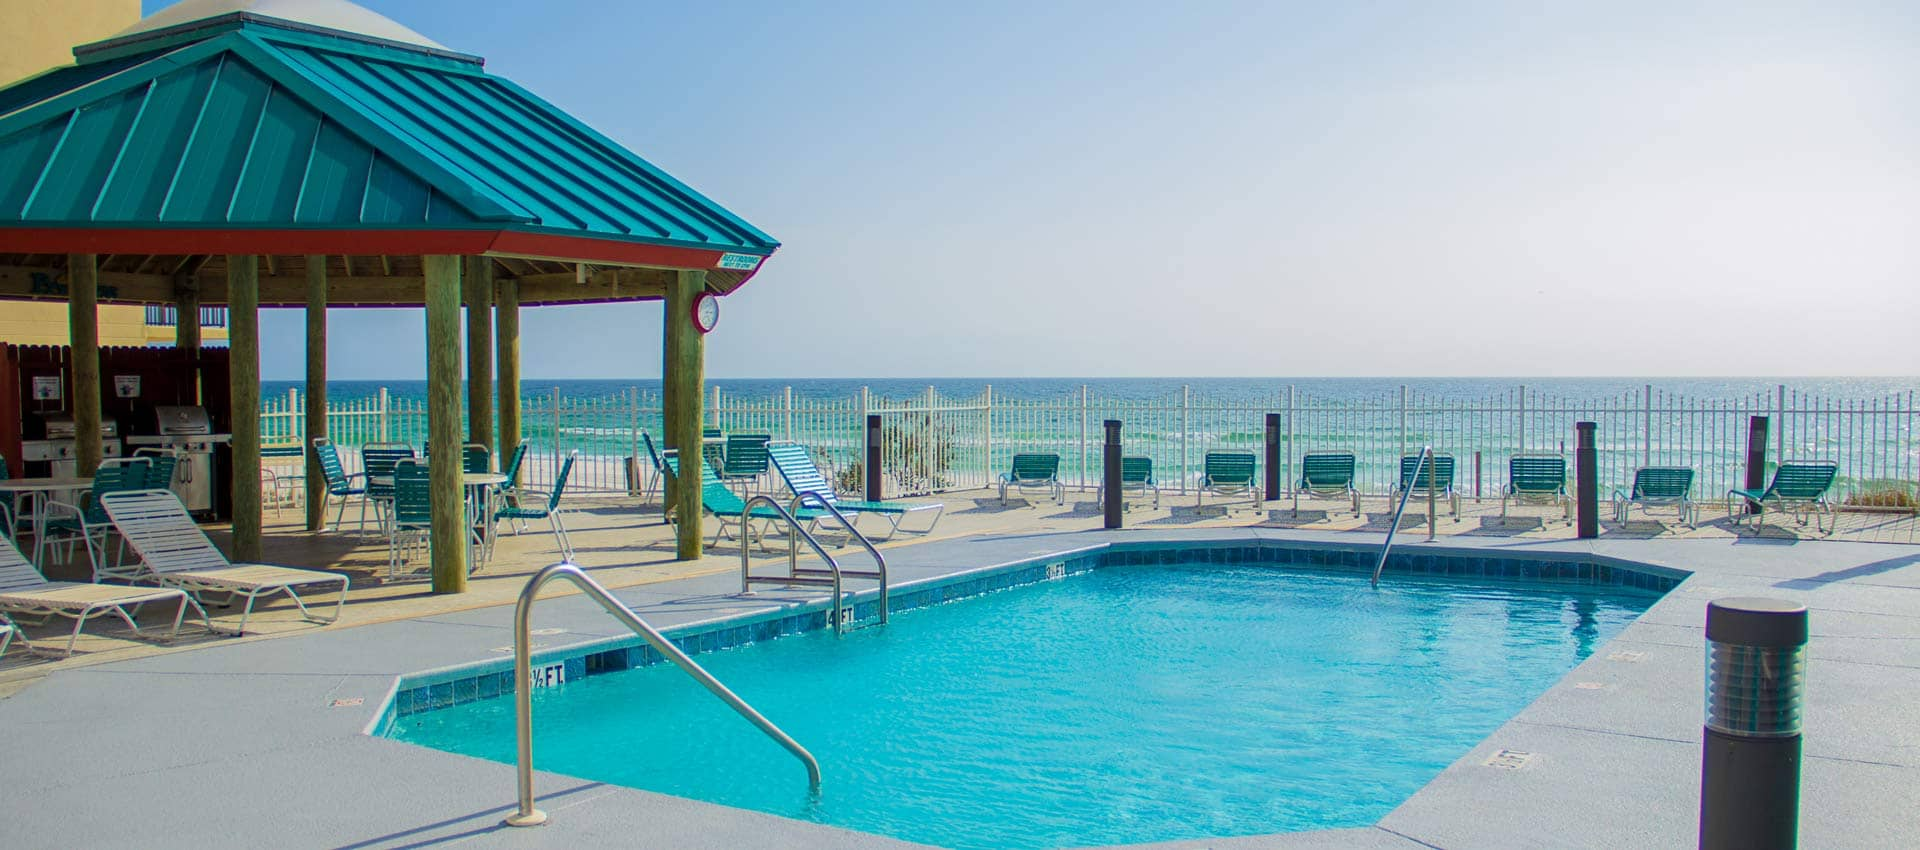 Panama City Beach Condo Rentals Panama City Beach Vacation Rentals Princess Condo Rentals